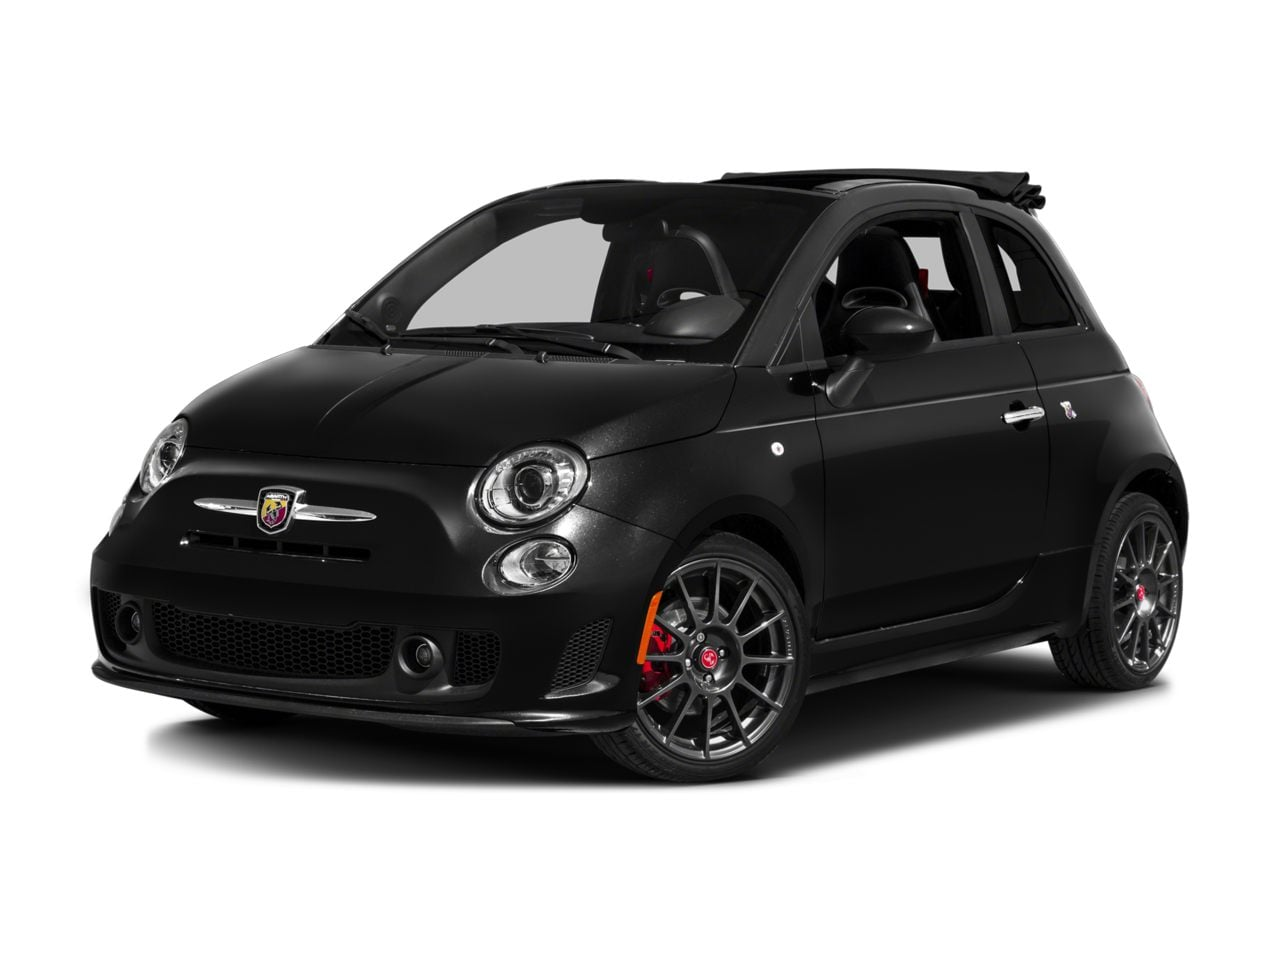 convertible para fiat 500 abarth cabrio 2016 tuxtla gutierrez. Black Bedroom Furniture Sets. Home Design Ideas